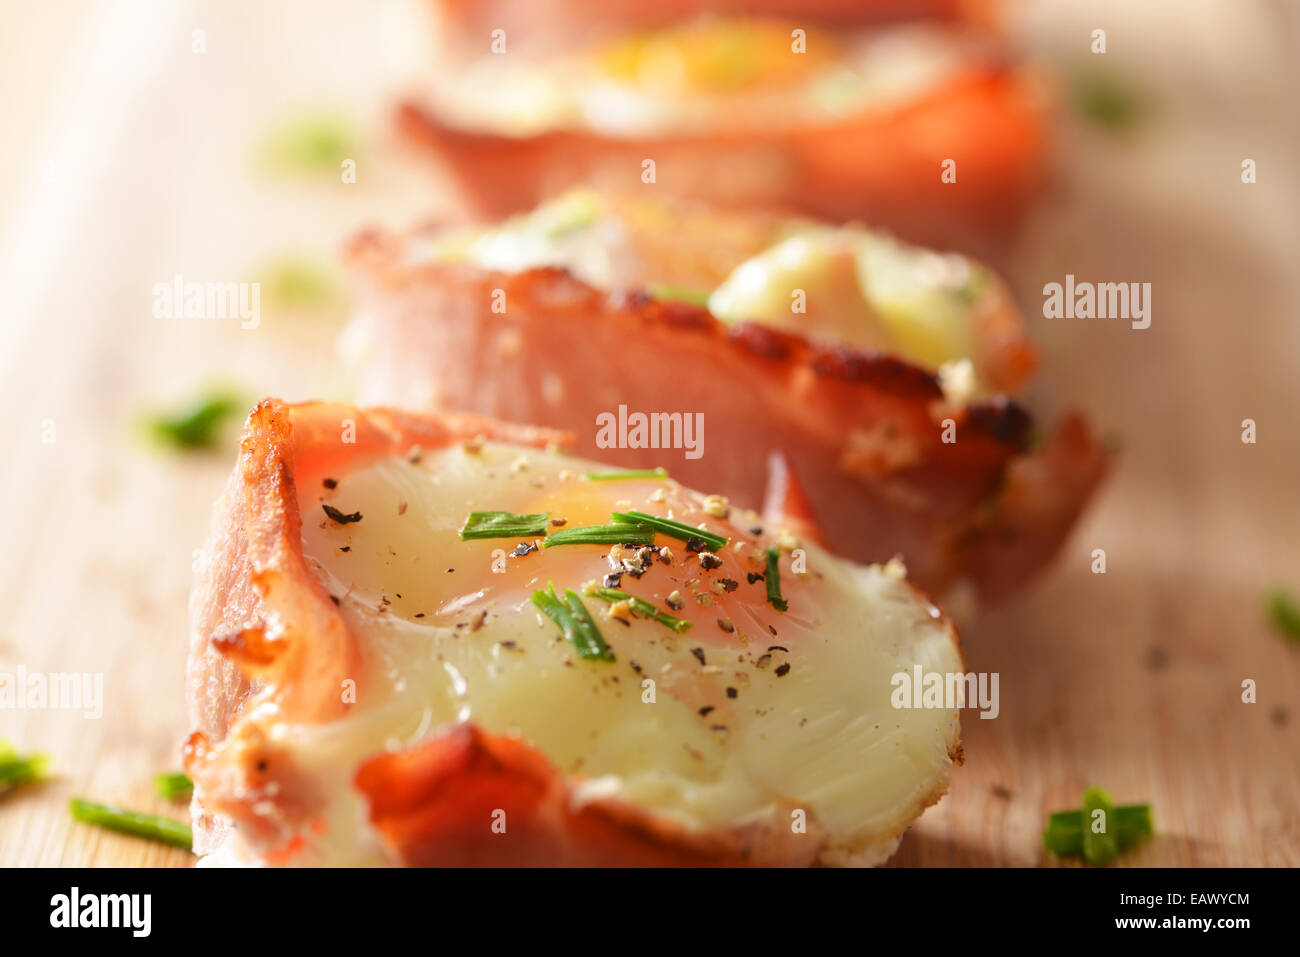 Egg and bacon cupcakes served and ready to eat. Stock Photo